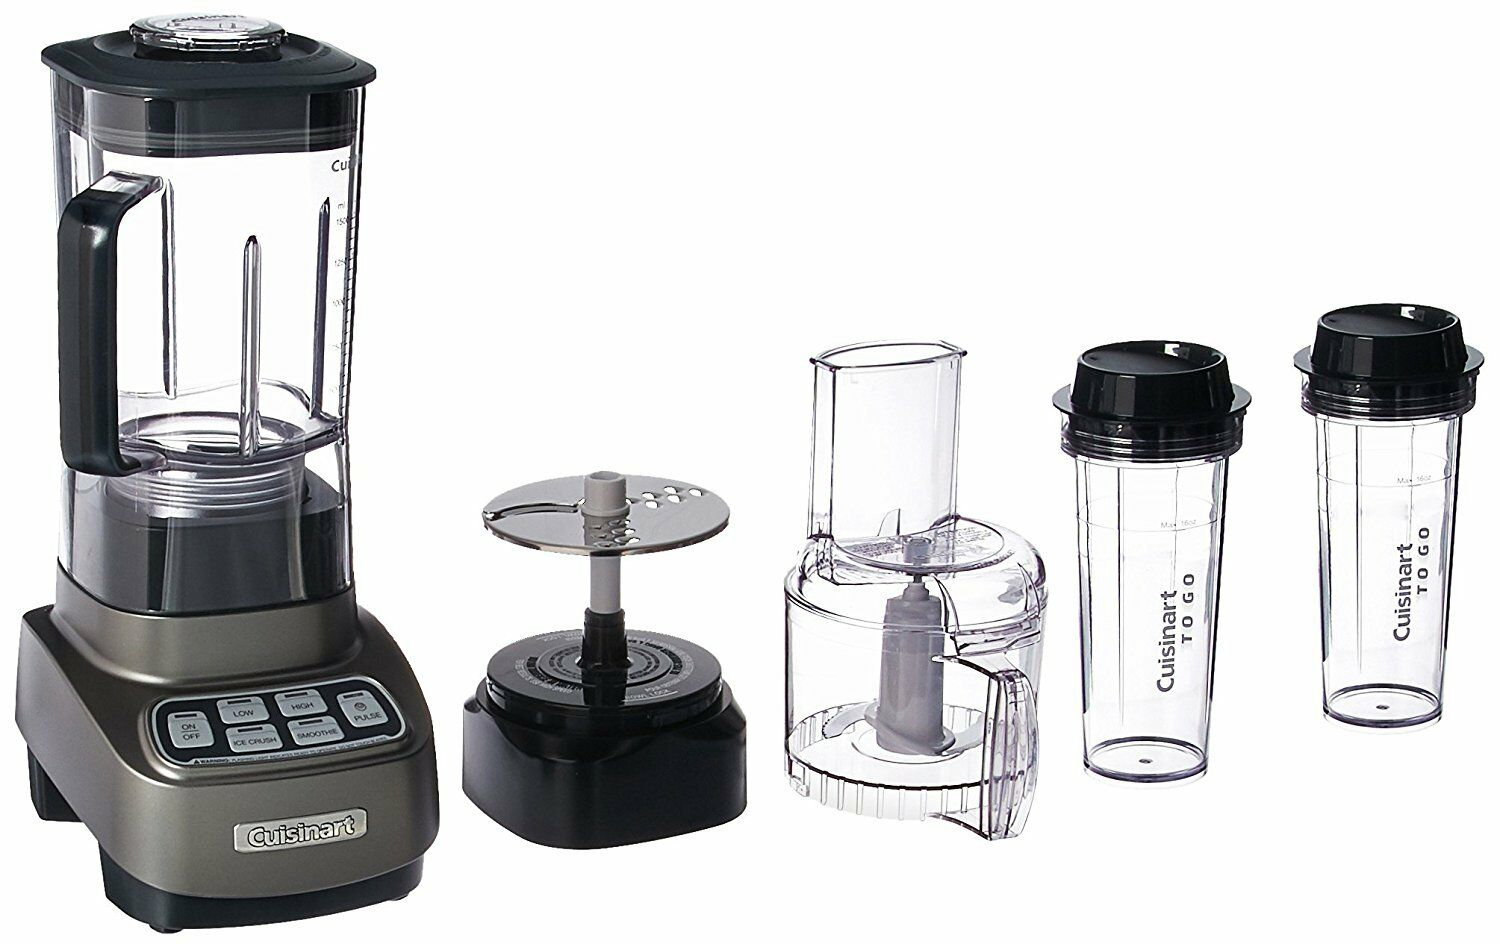 Cuisinart BFP-650GM Velocity Ultra Trio 1 HP Blender Robot culinaire avec Voyage